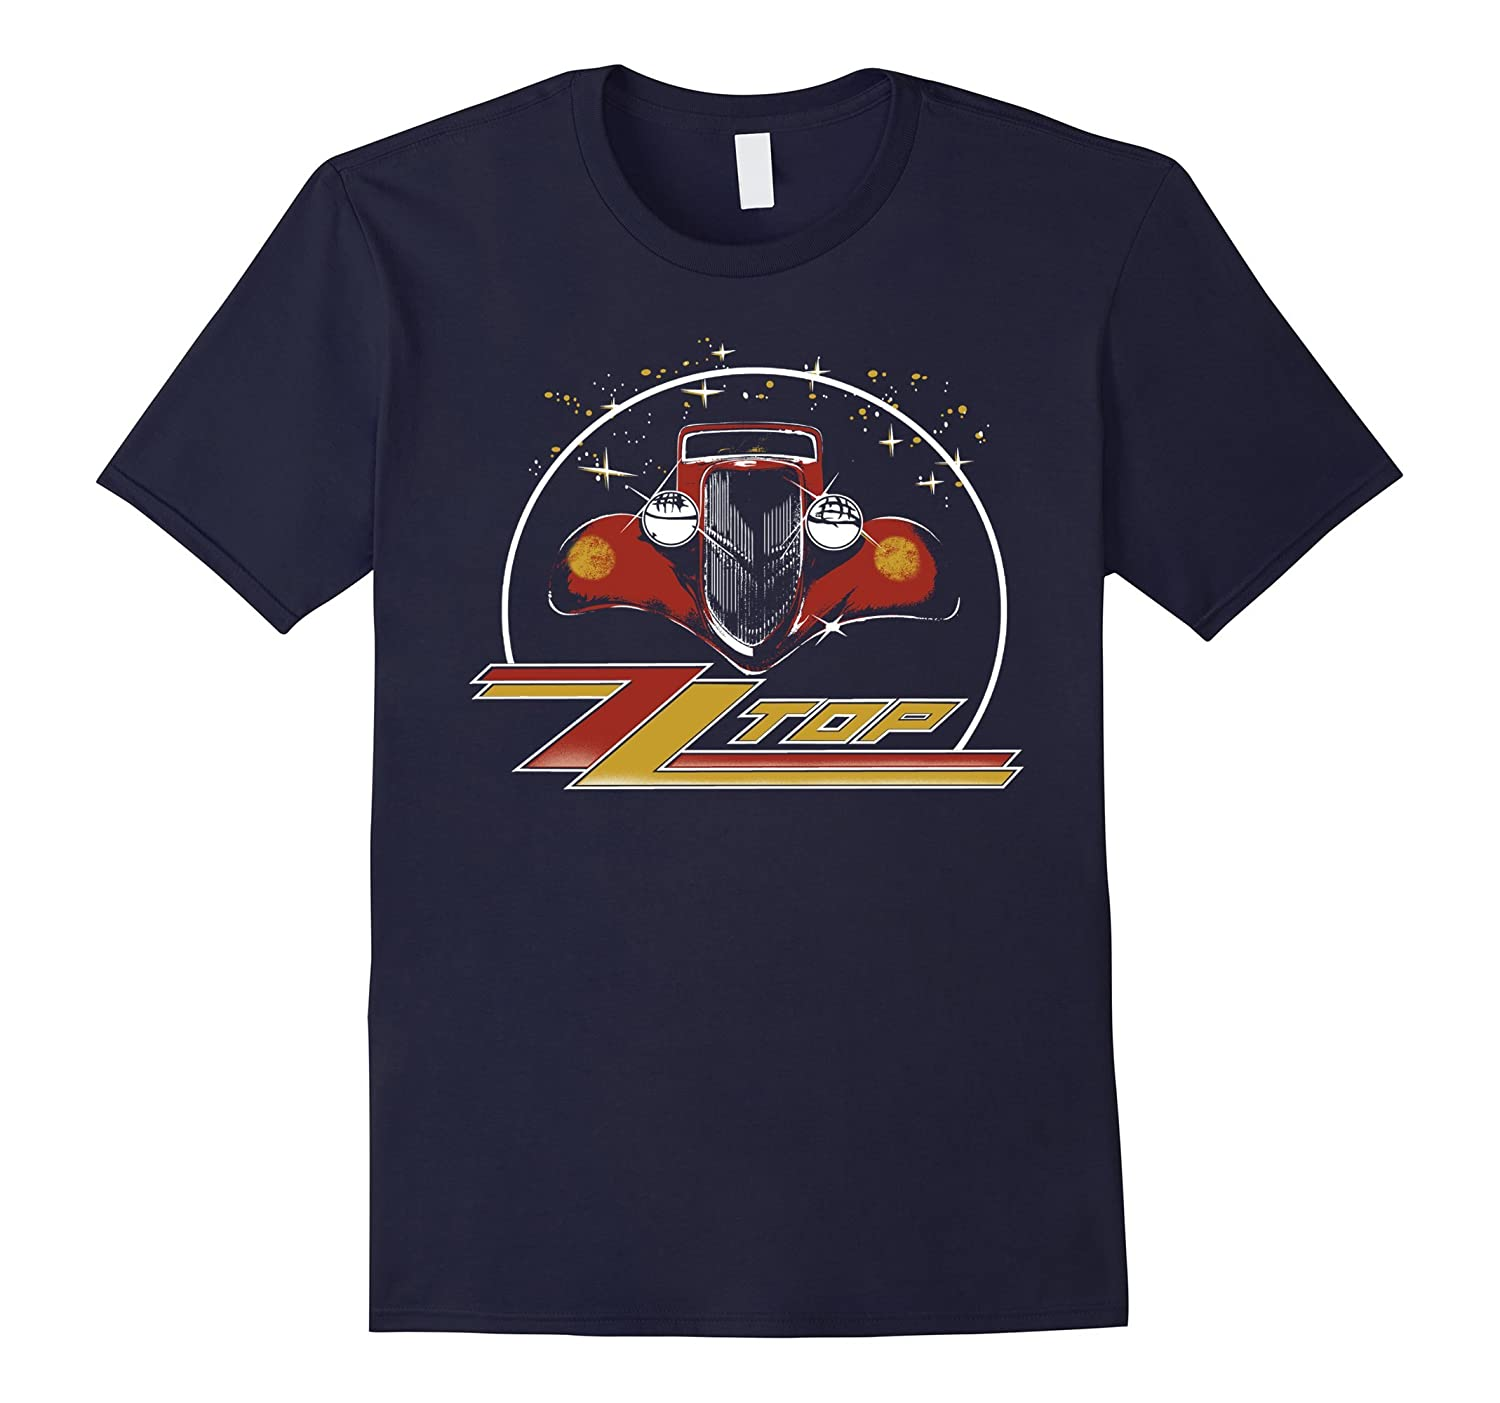 ZZ Top - Eliminator T-Shirt-FL